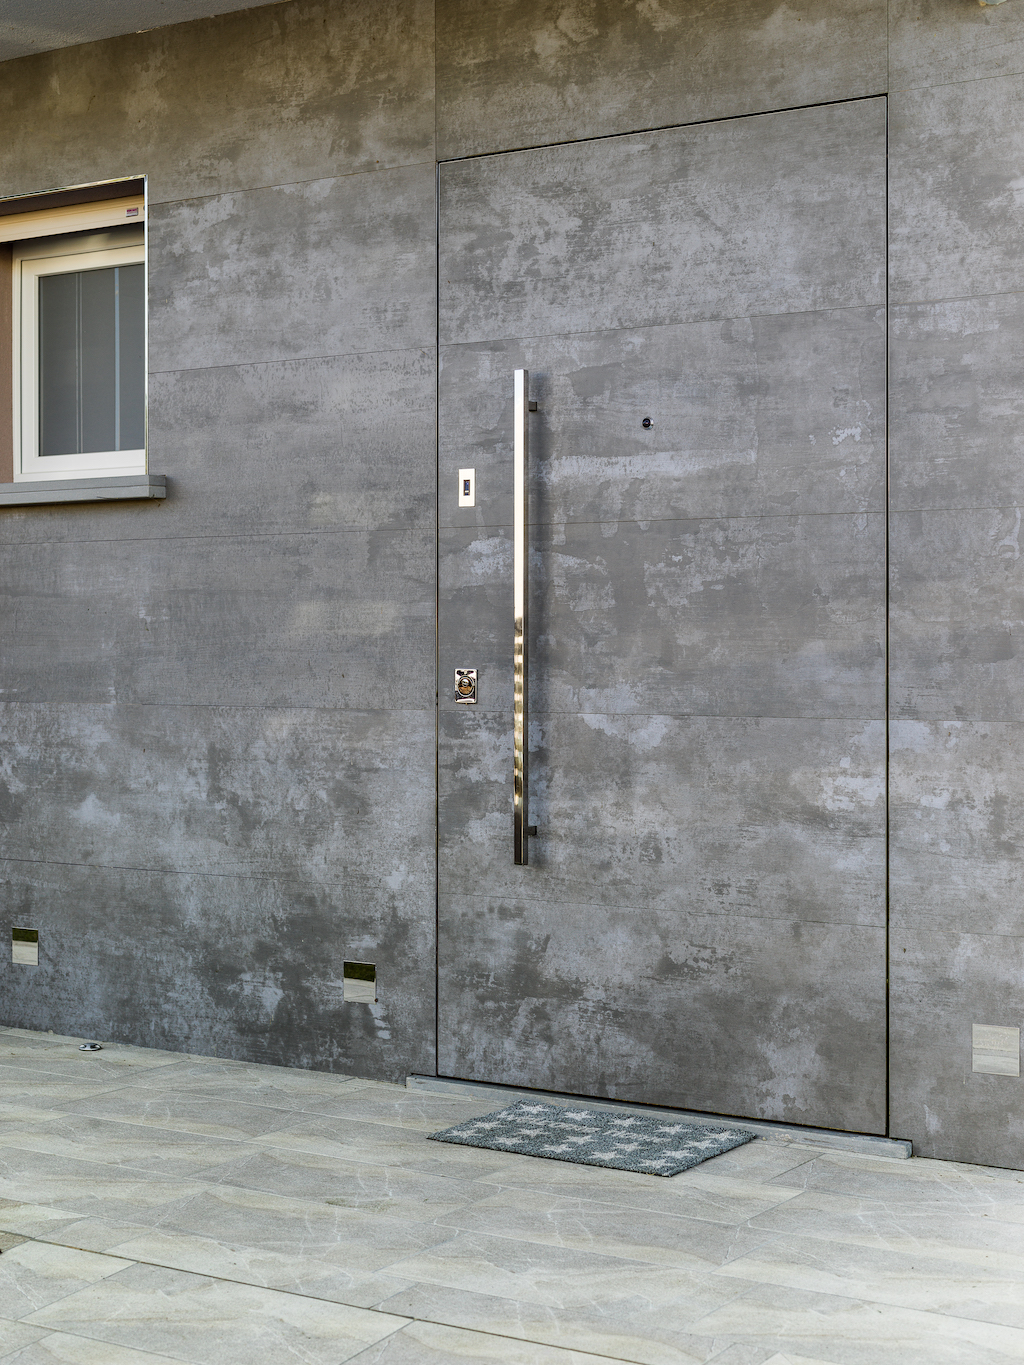 A photo of a front entry frameless door designed to match the exterior wall seamlessly.